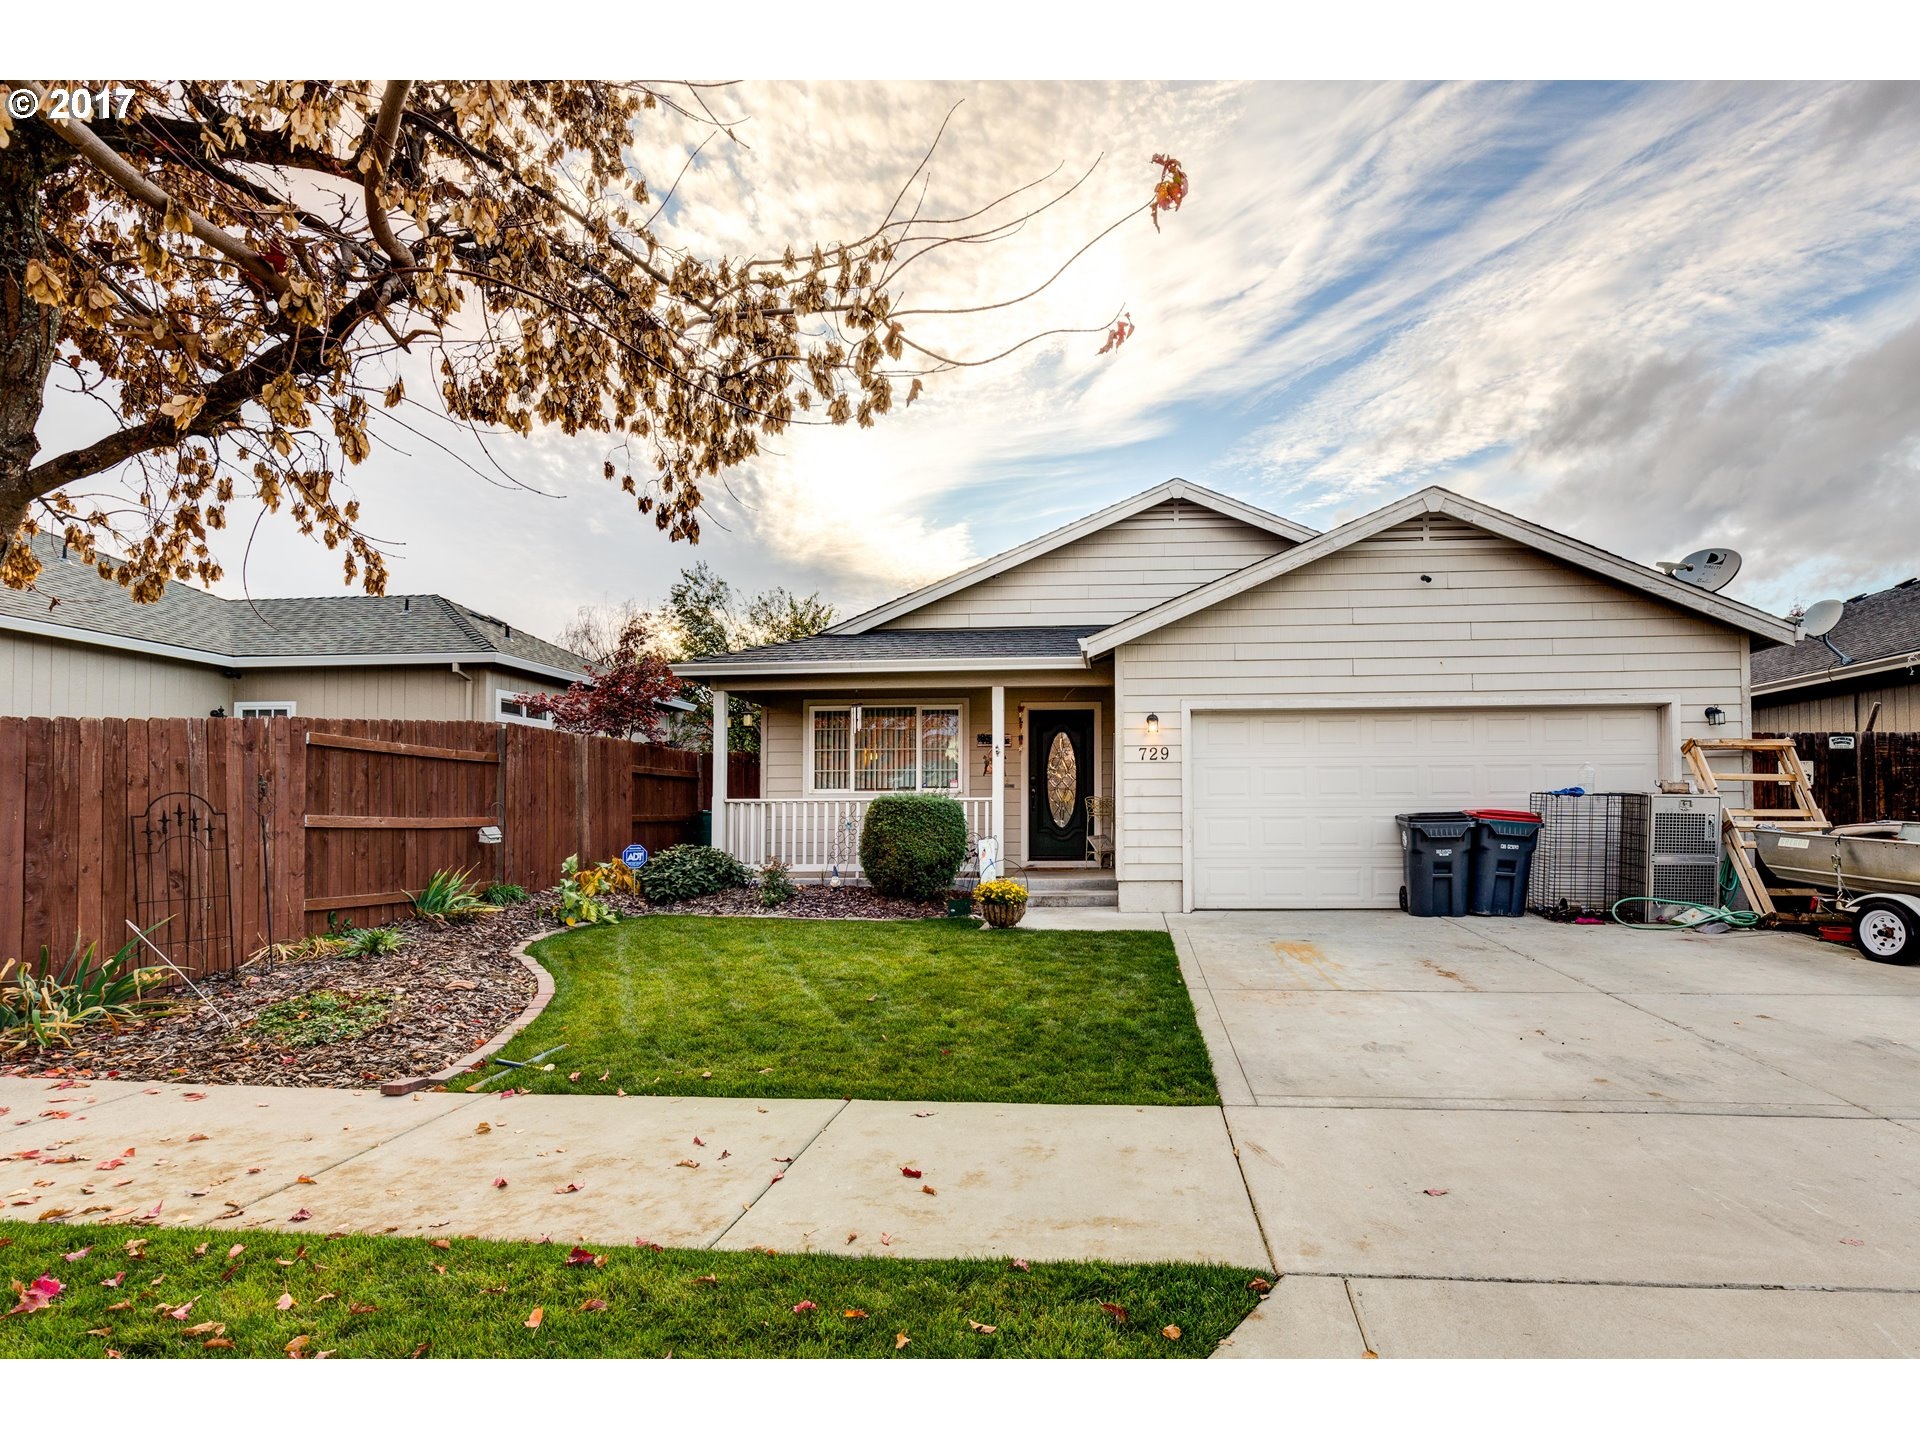 Phoenix, OR 3 Bedroom Home For Sale